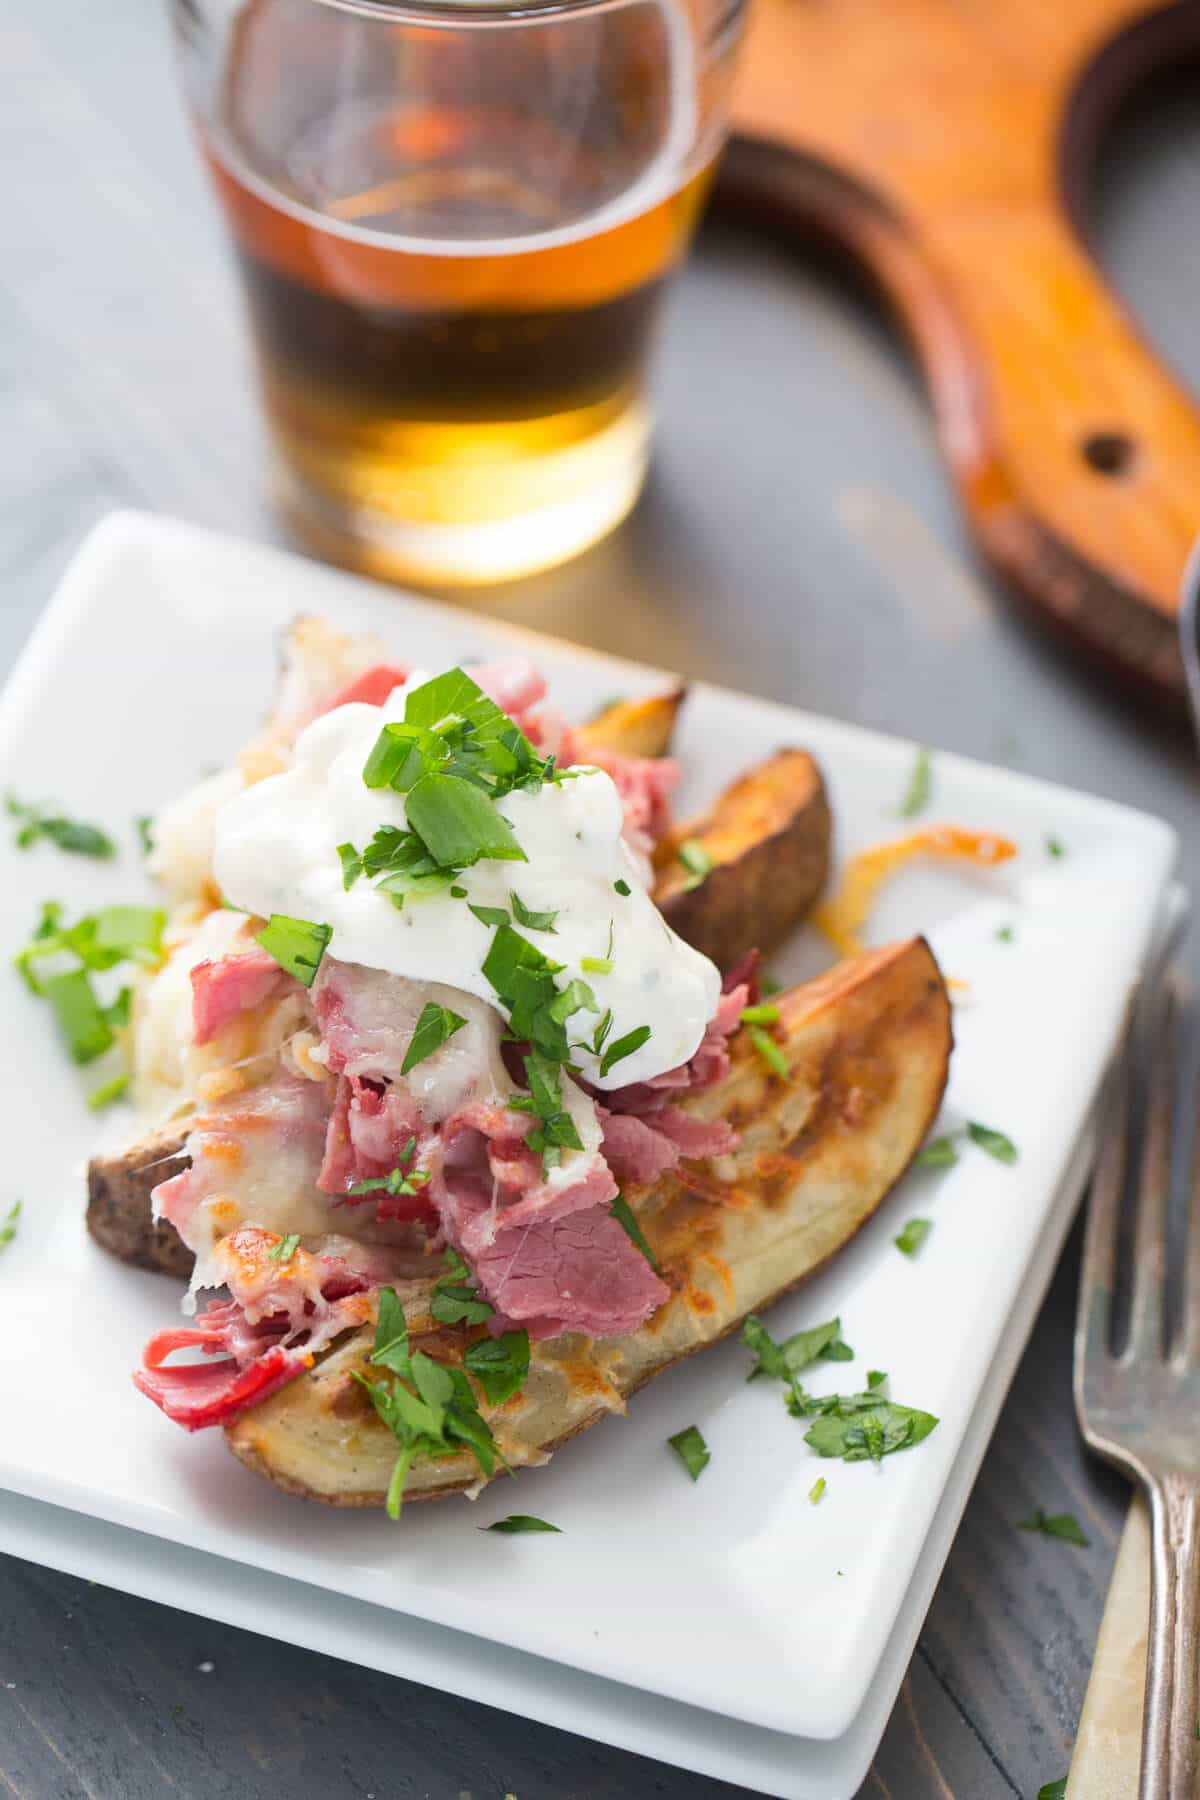 Loaded potatoes recipe the is topped with corned beef, kraut, cheeses and crispy onions! Absolutely delicious!